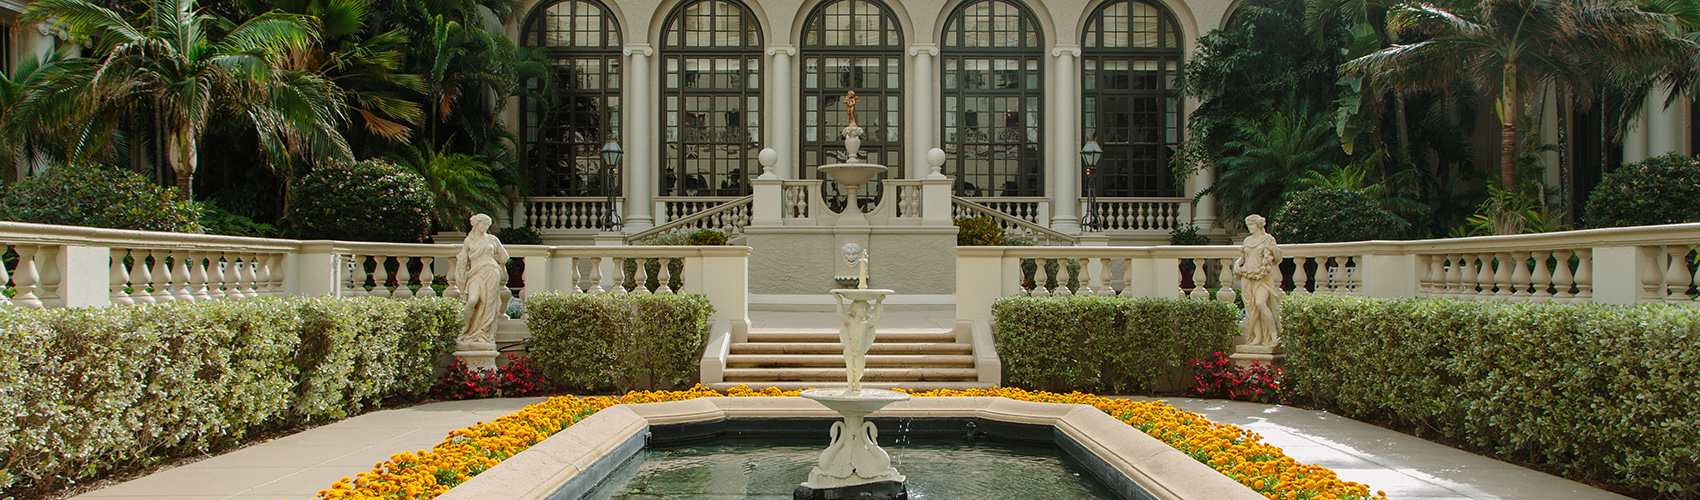 The Mediterranean Courtyard at The Breakers